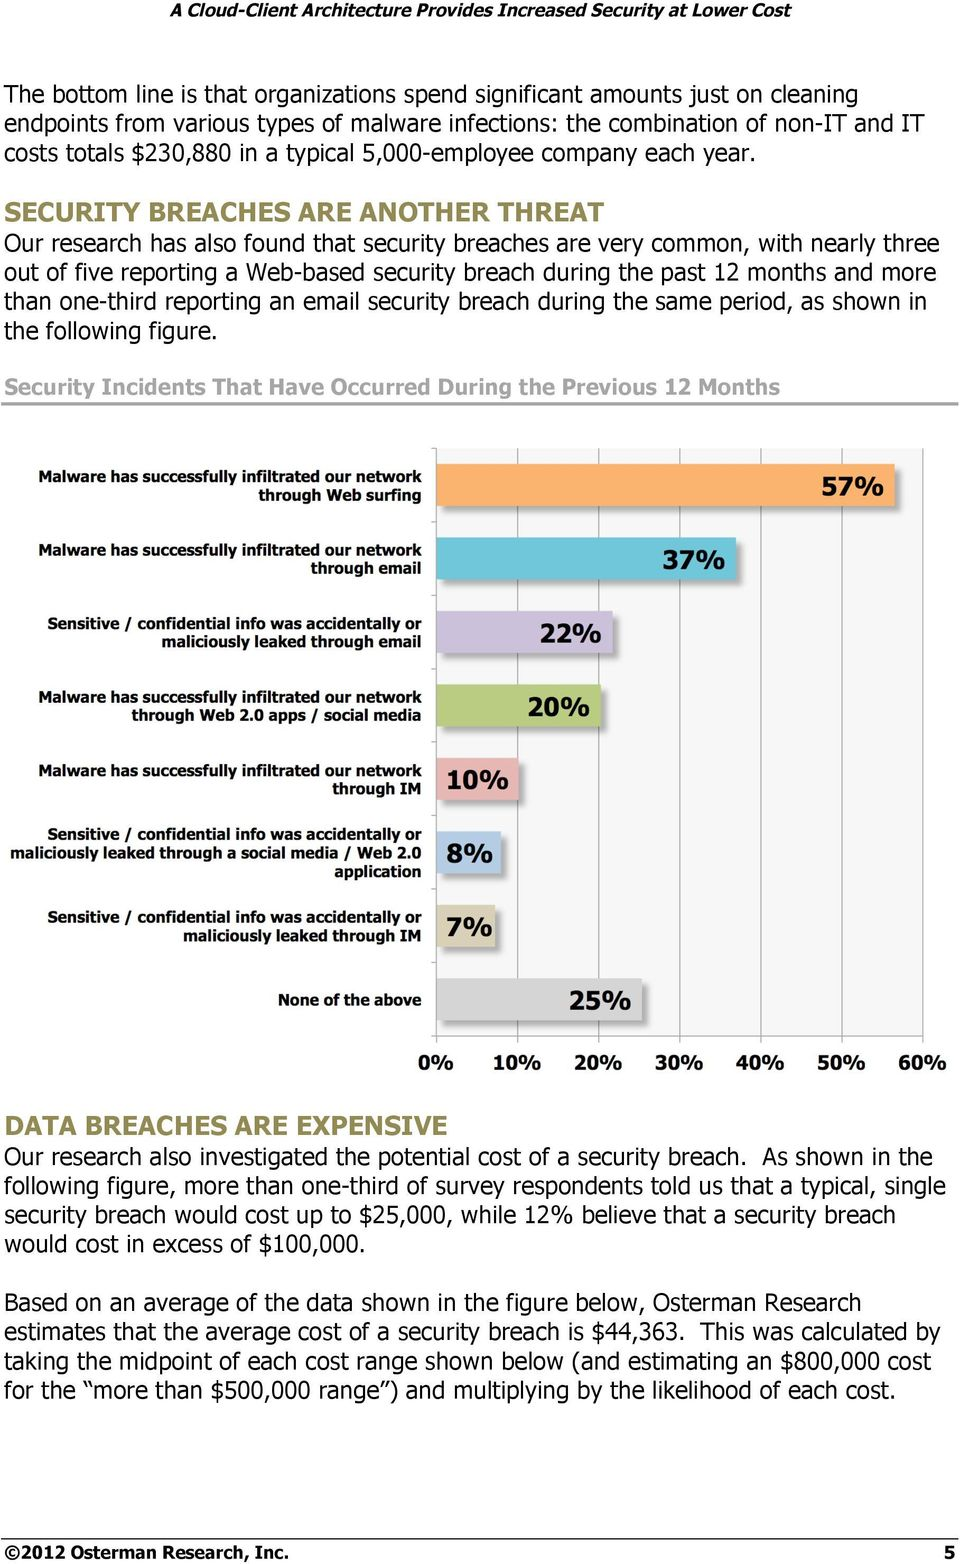 SECURITY BREACHES ARE ANOTHER THREAT Our research has also found that security breaches are very common, with nearly three out of five reporting a Web-based security breach during the past 12 months